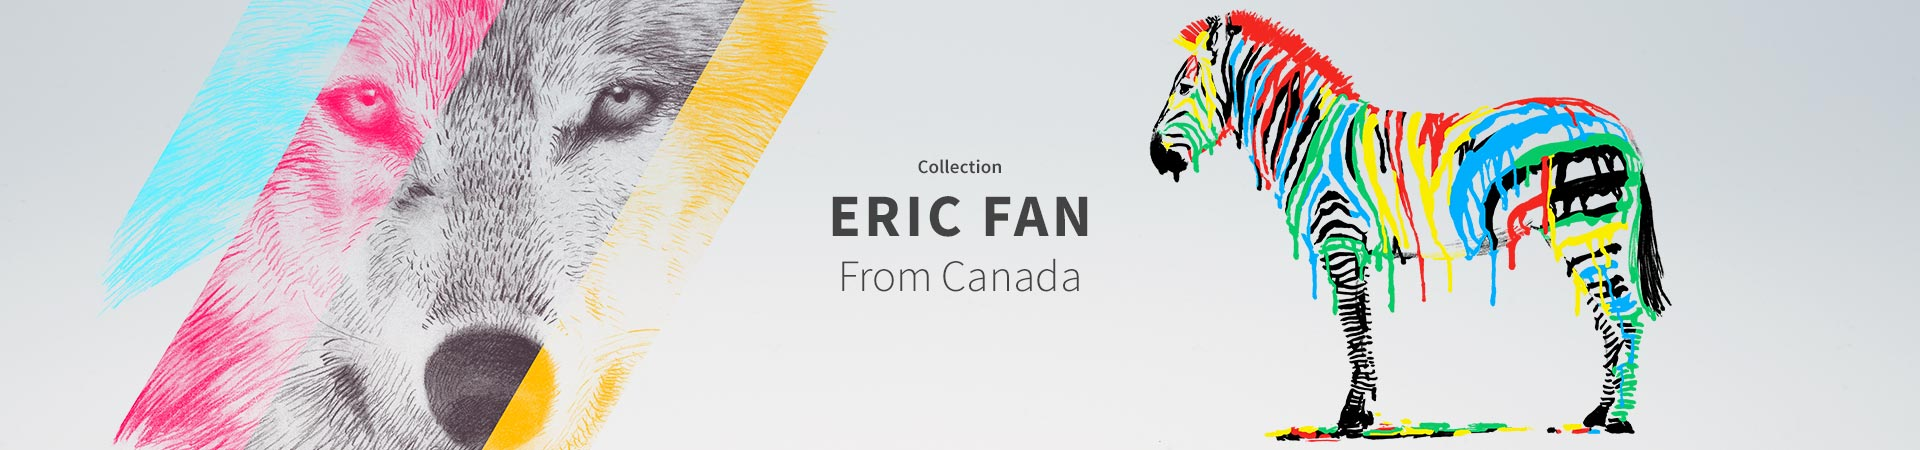 Collection Eric Fan